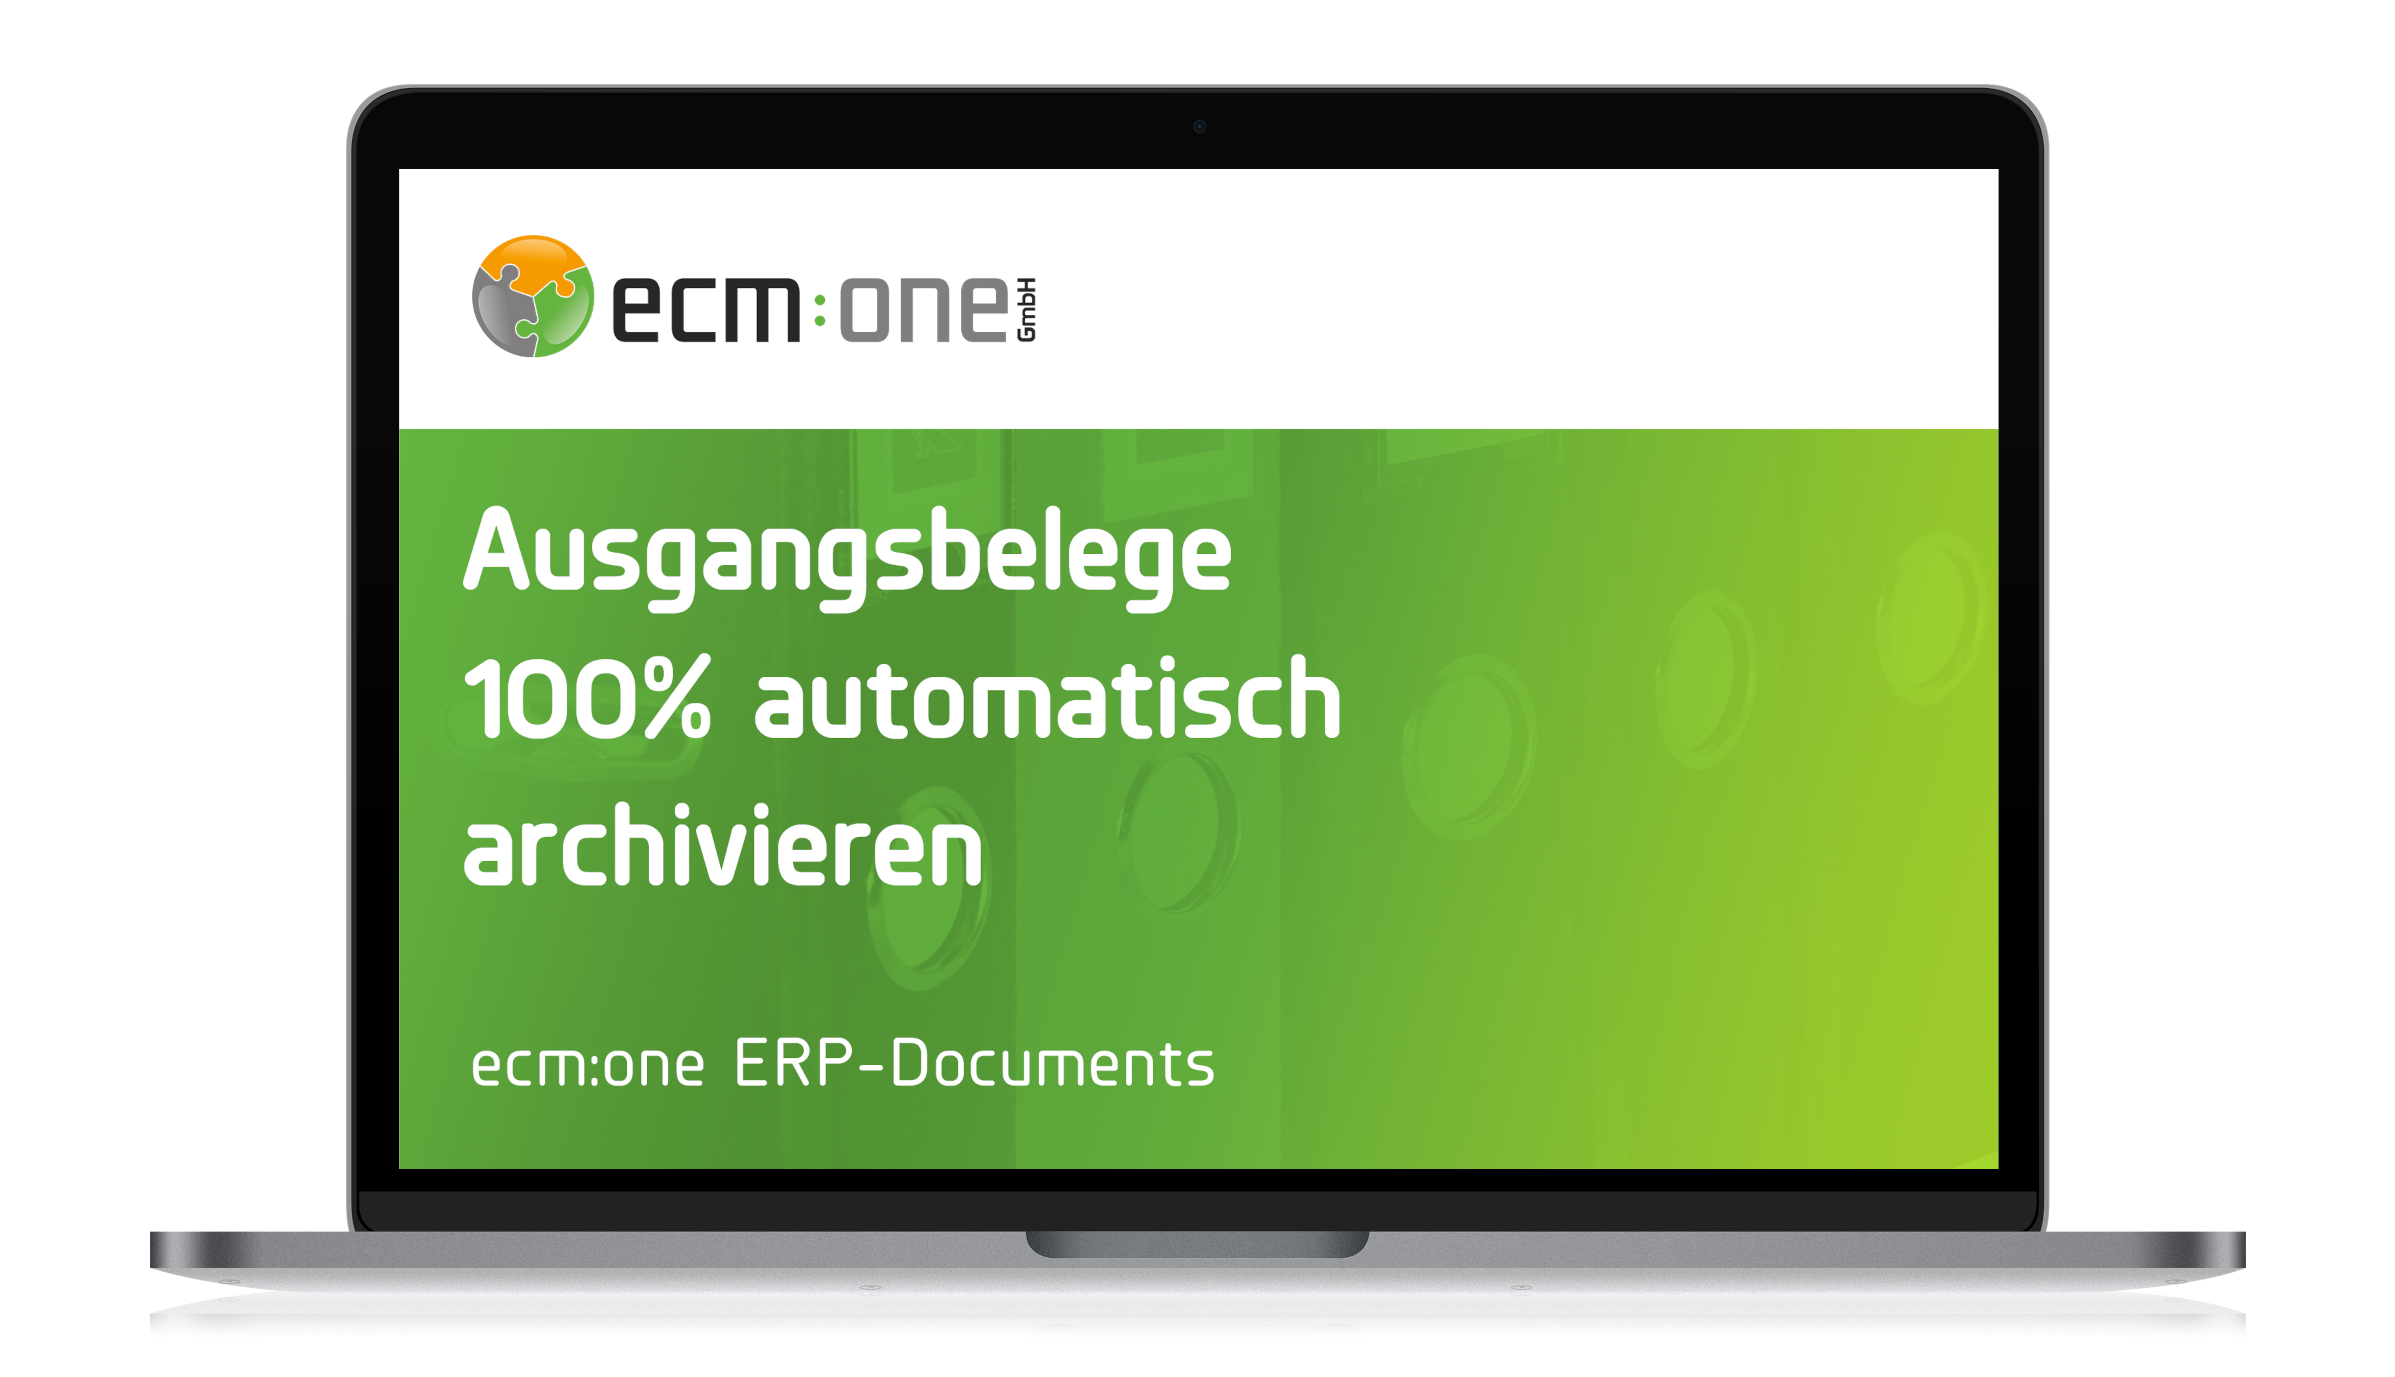 ecm:one ERP documents